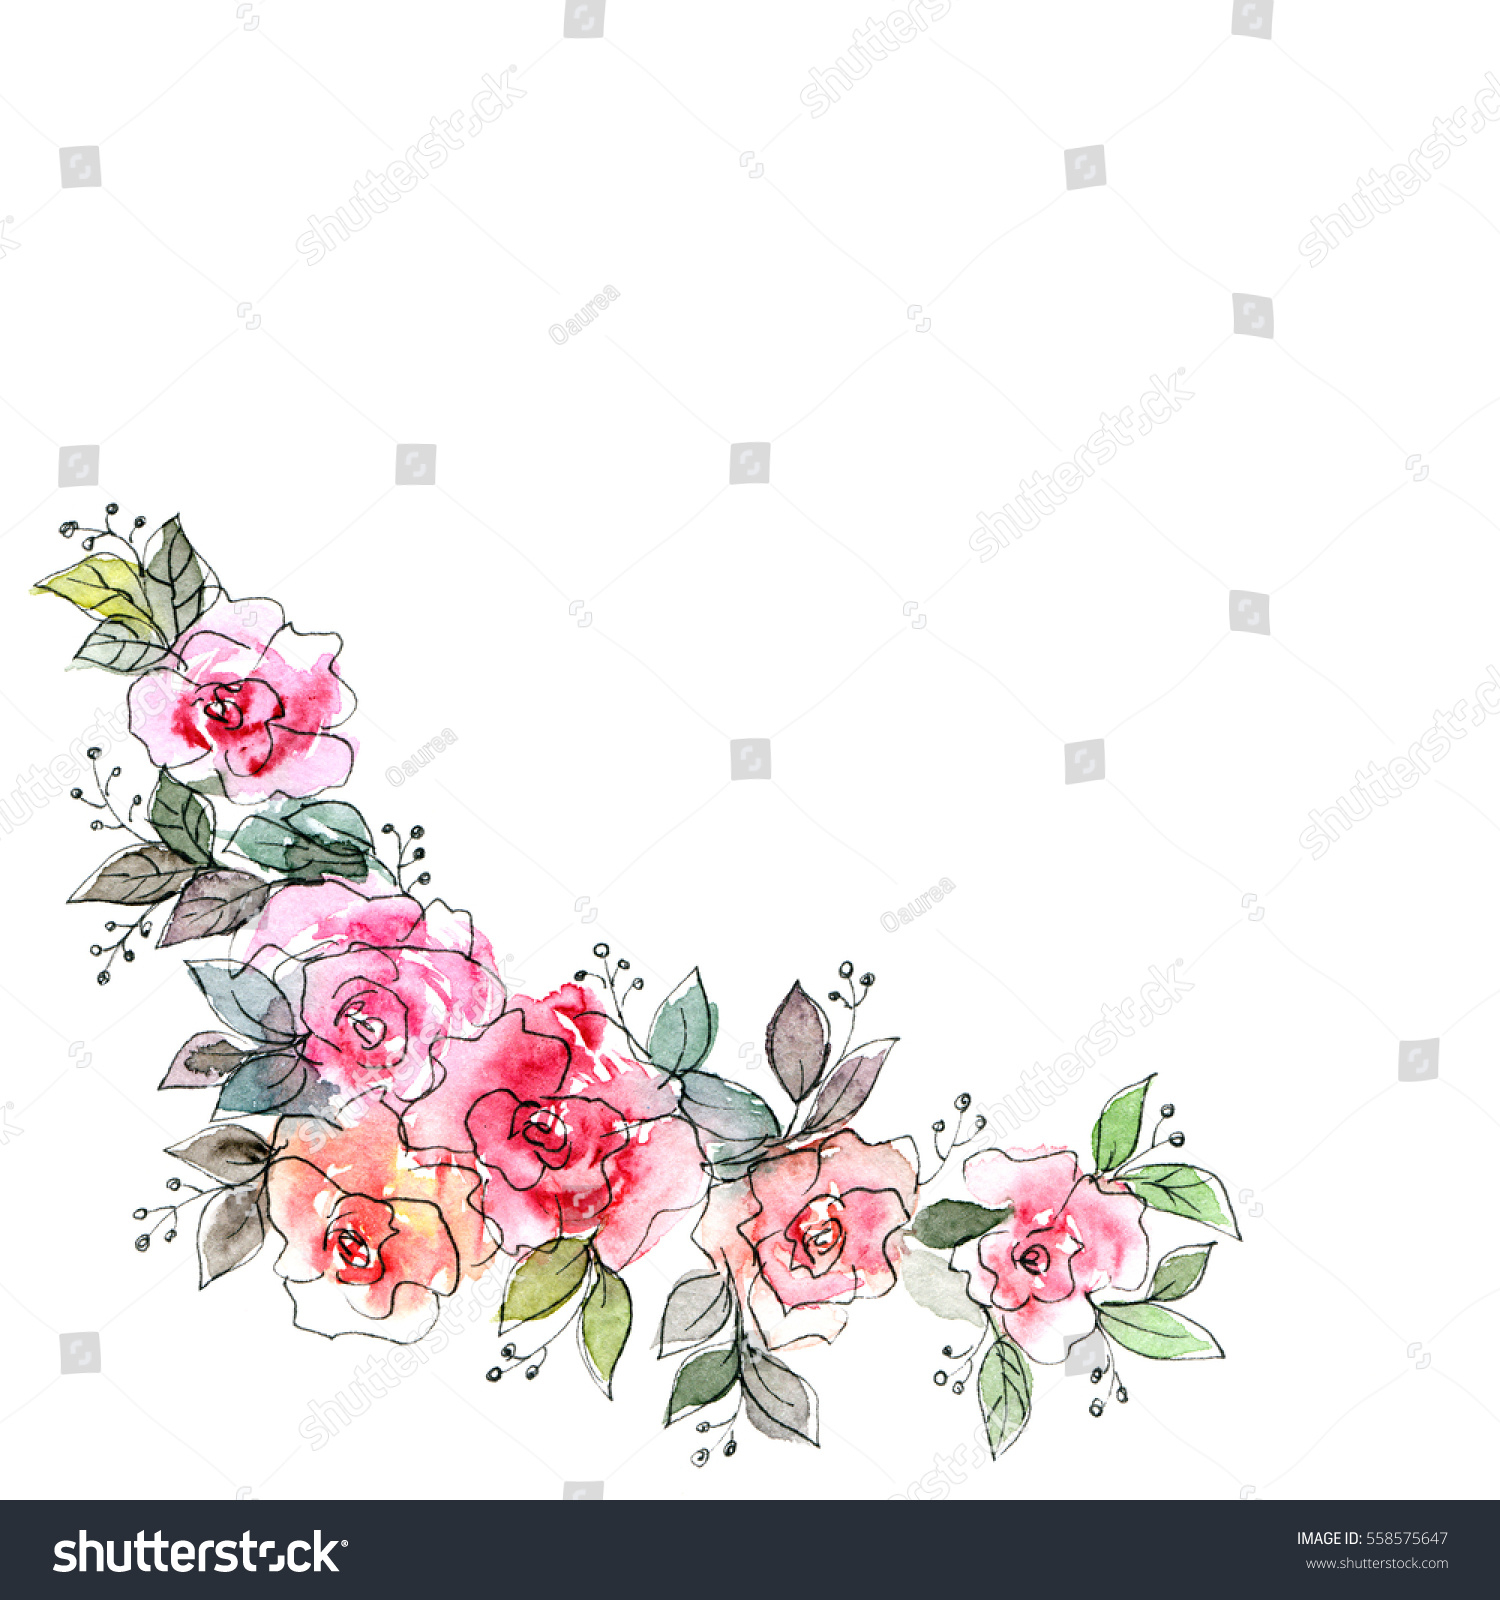 floral corner watercolor floral bouquet birthdayのイラスト素材